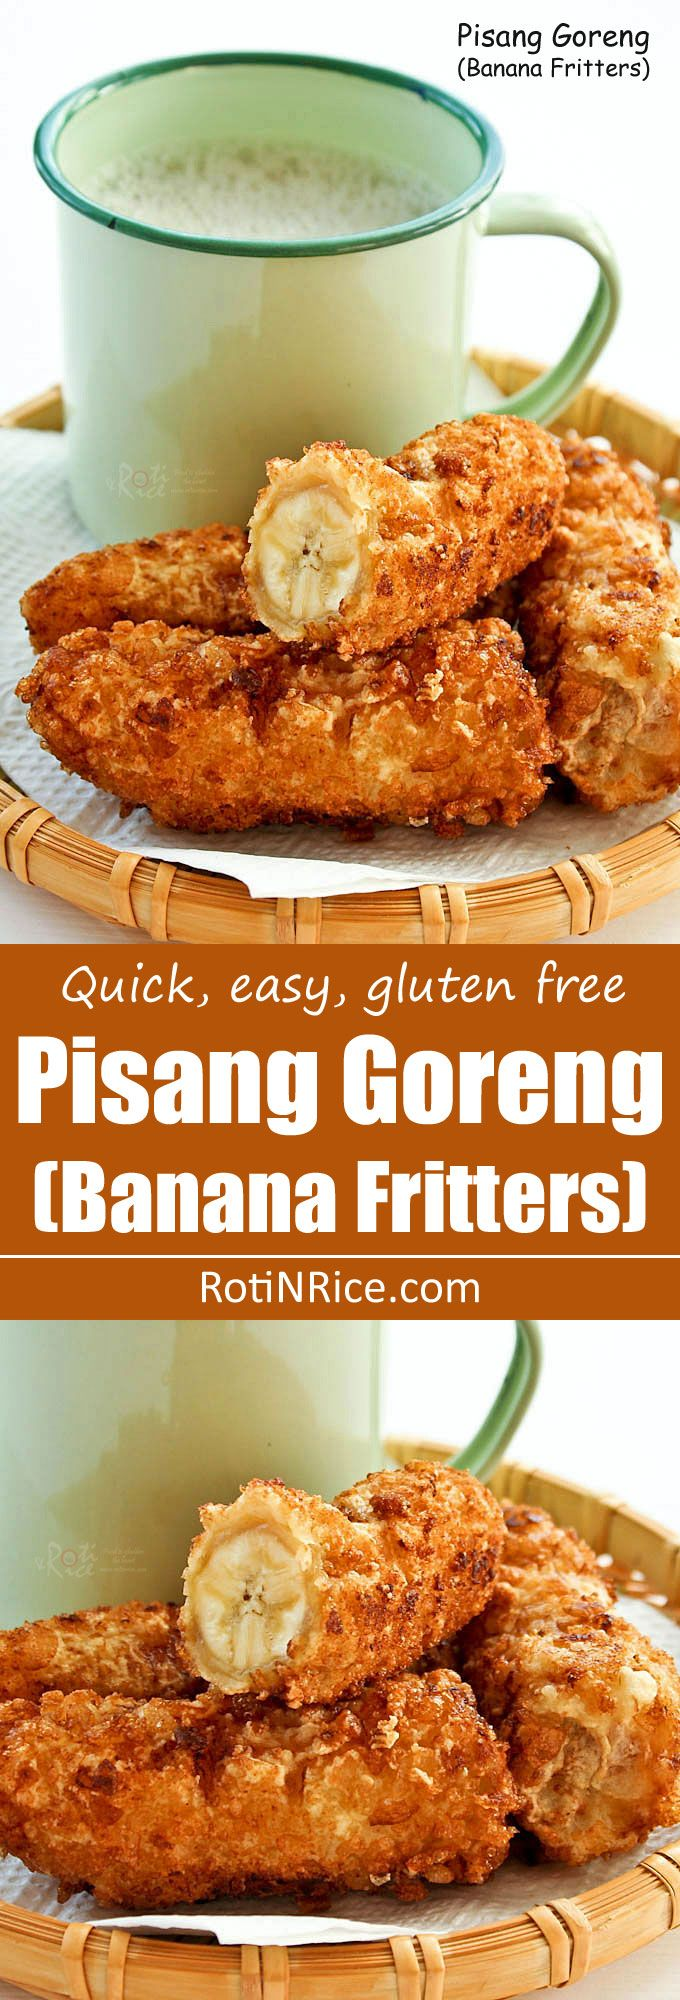 The ever popular Pisang Goreng (Banana Fritters) with a gluten free crispy coating. Only a few simple ingredients and minutes to prepare. | RotiNRice.com